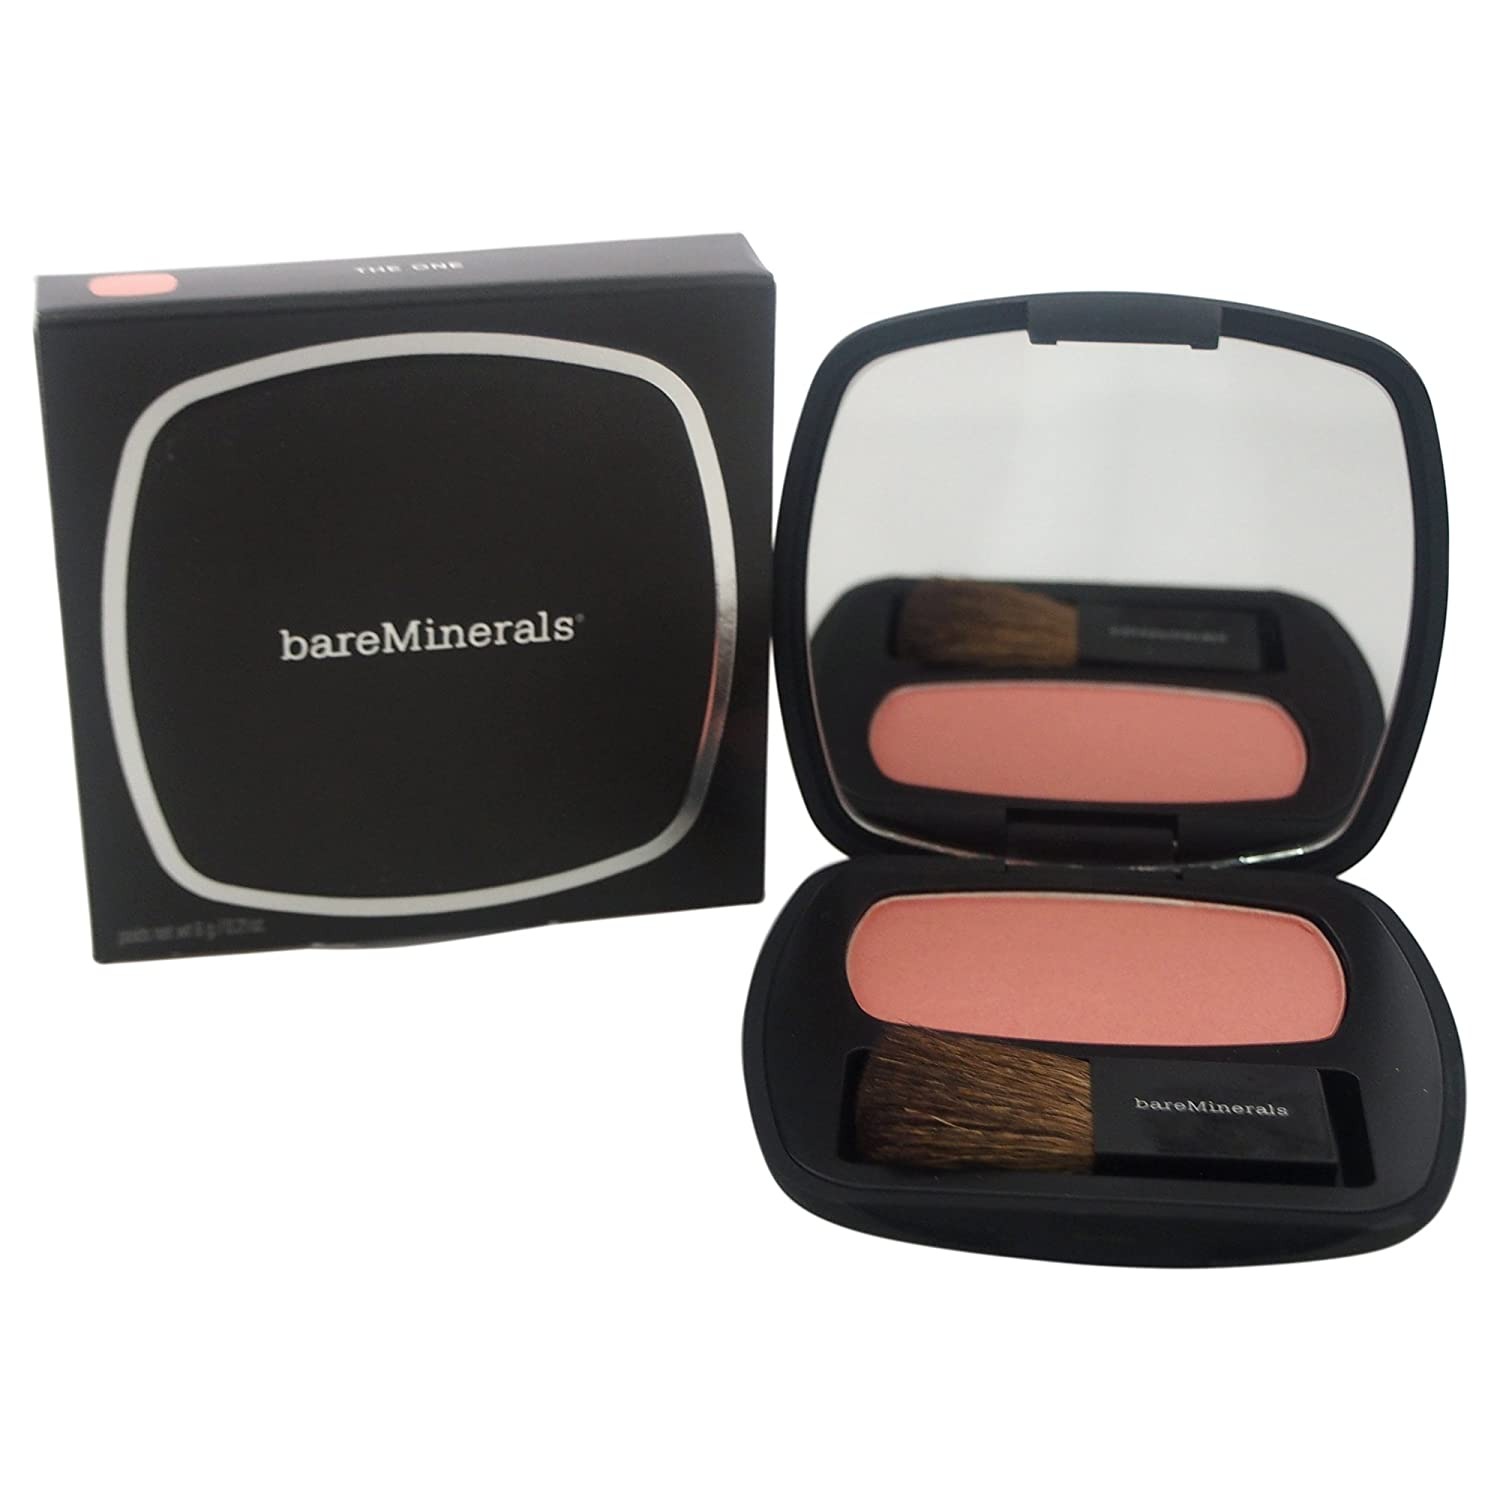 bareMinerals Ready The One Blush for Women, 0.21 Ounce